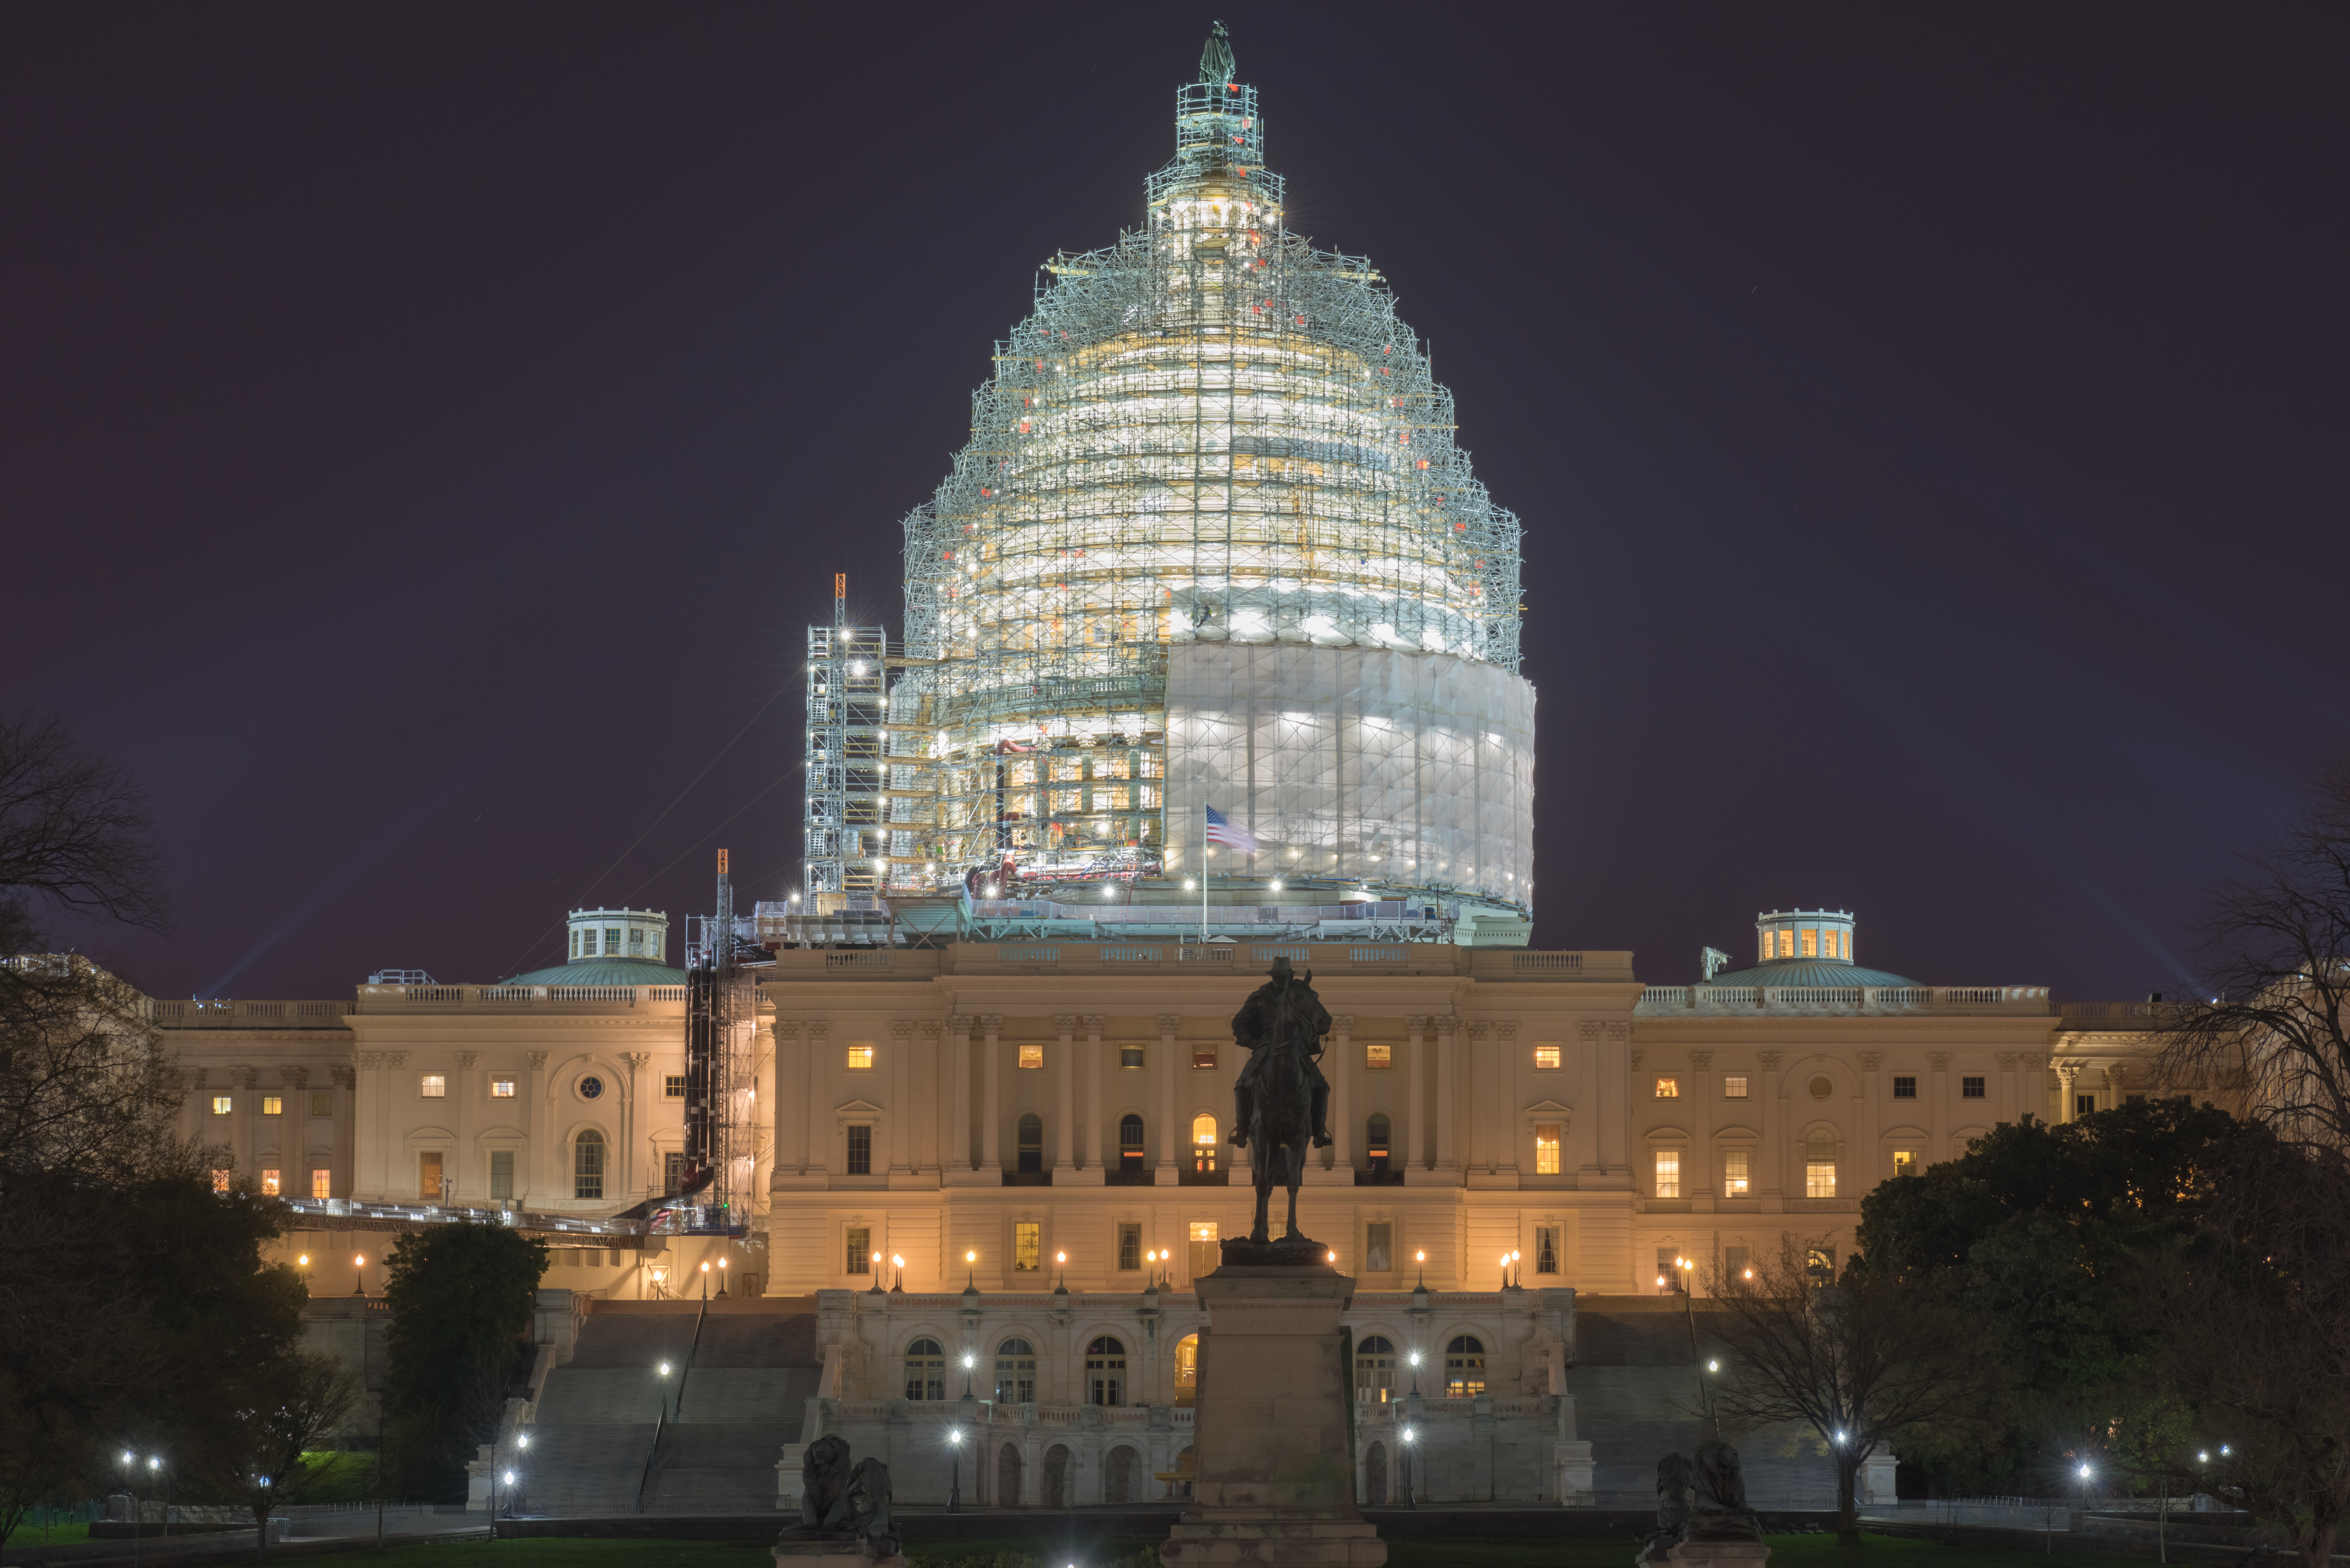 NLC: Congress and the Administrative State